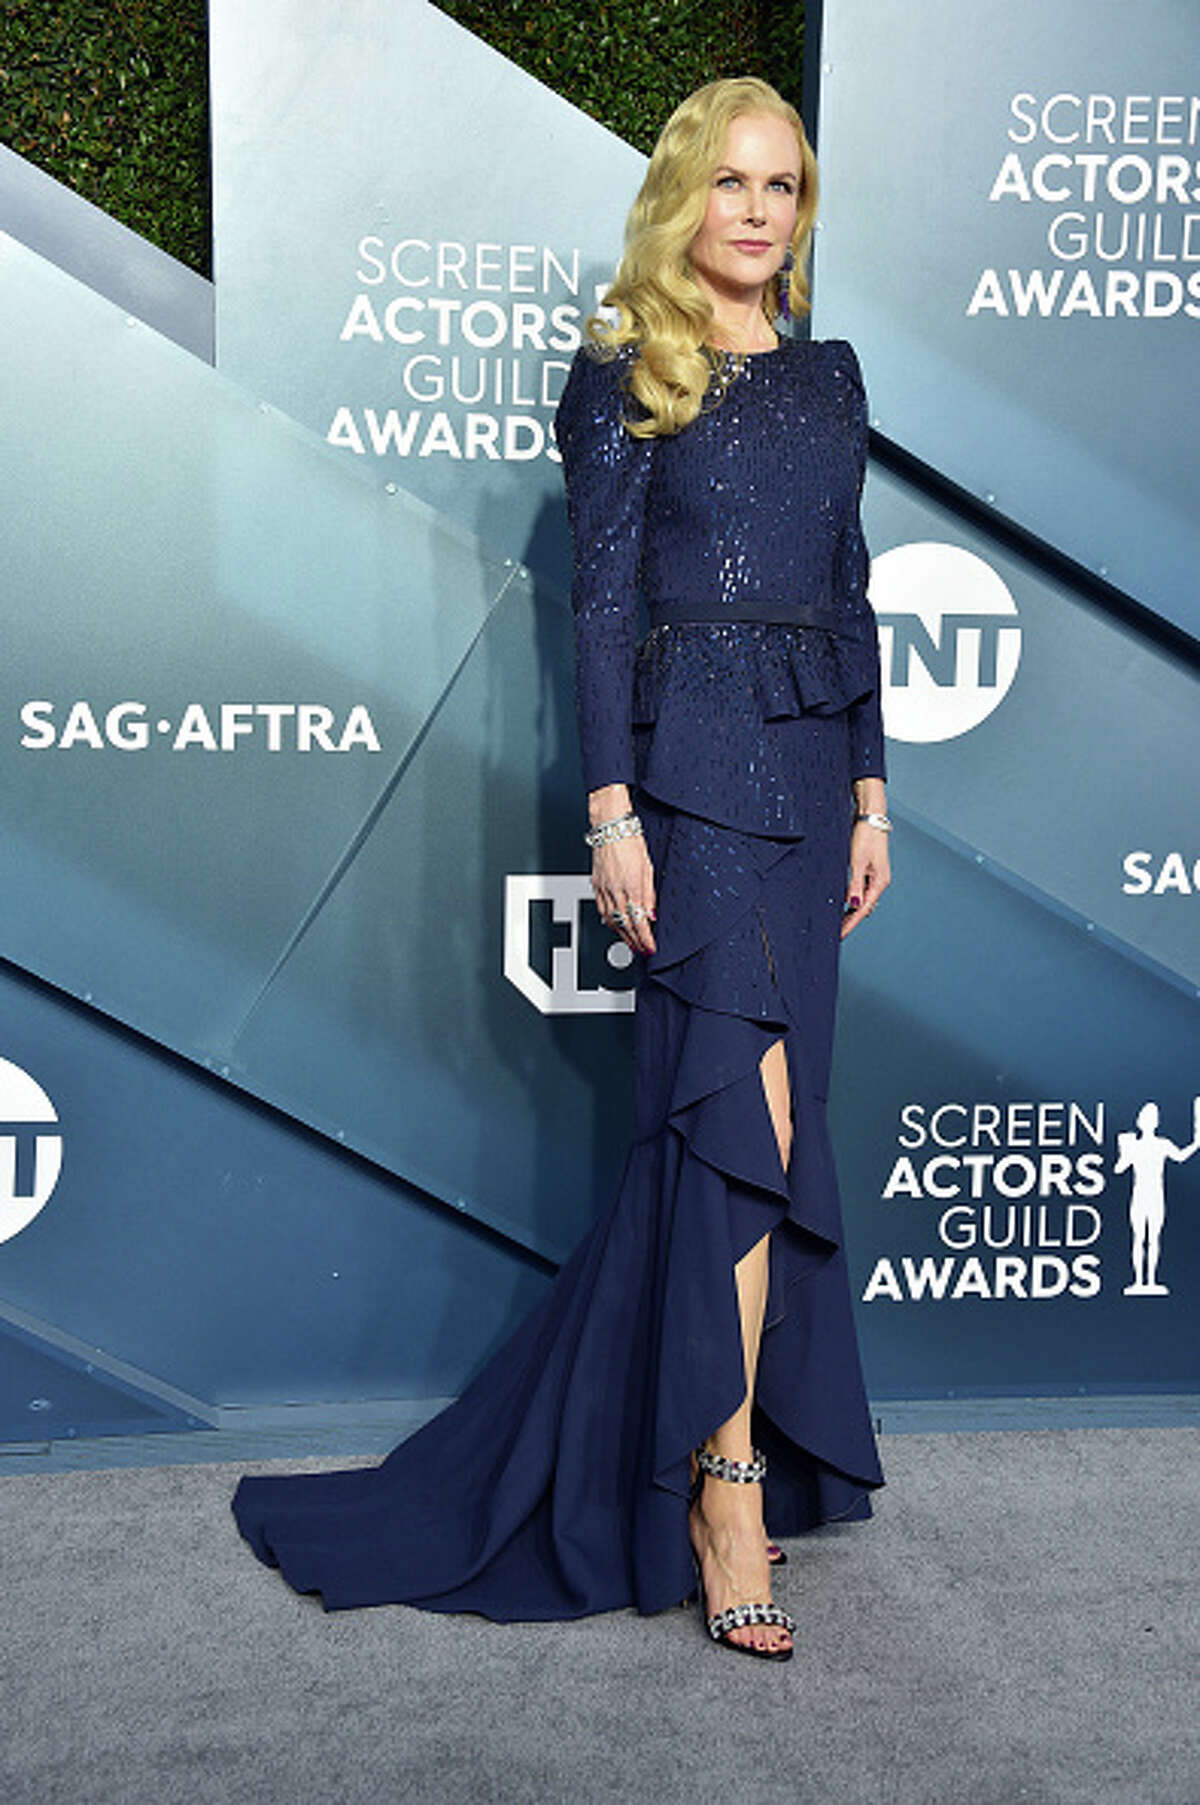 Nicole Kidman attends the 26th Annual Screen ActorsGuild Awards at The Shrine Auditorium on January 19, 2020 in Los Angeles, California. 721430 (Photo by Gregg DeGuire/Getty Images for Turner)